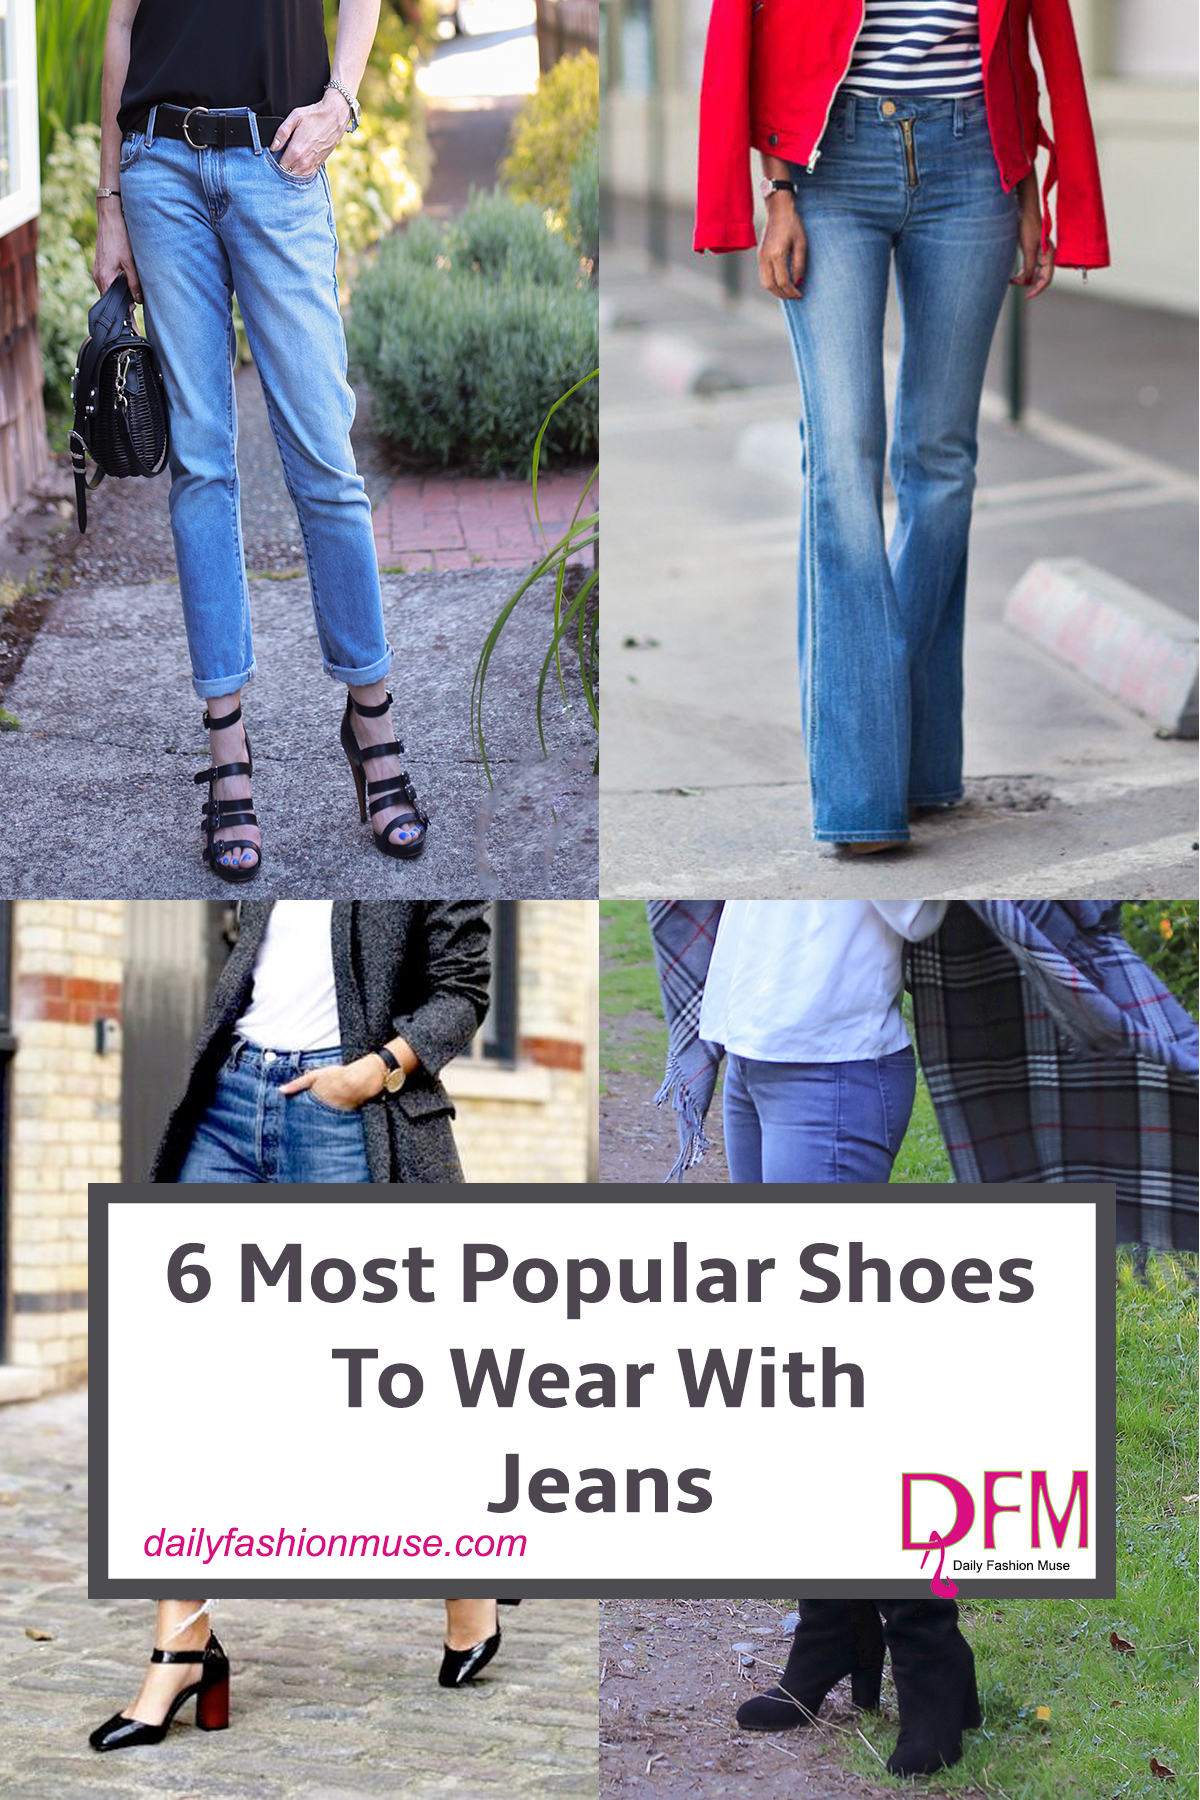 What is the secret to the pairing of shoes to wear with jeans? Click through to find out the 6 fail-safe options plus some easy alternates.